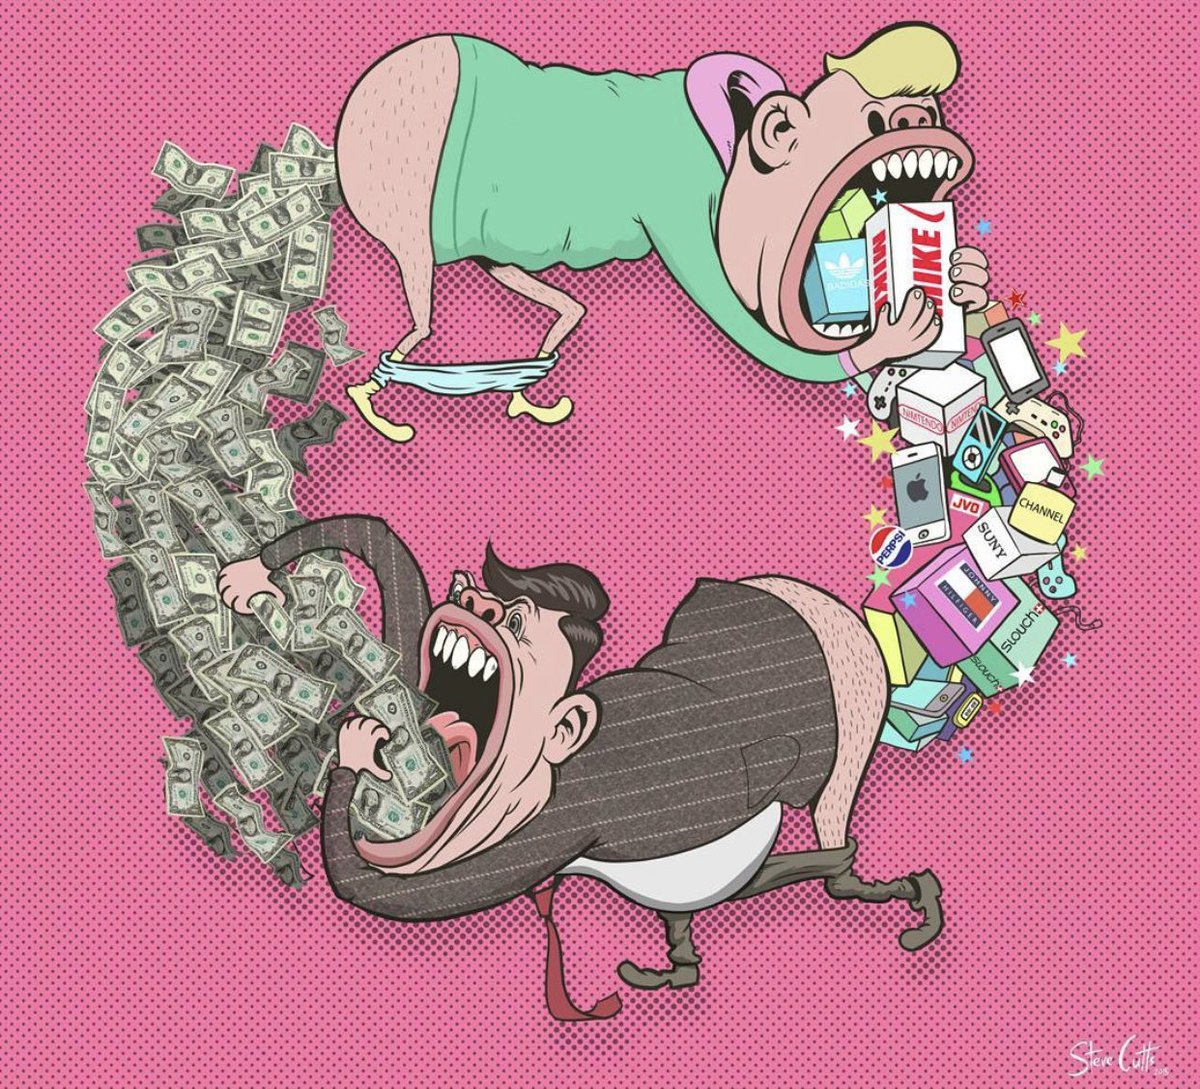 Don't be this.  It's killing us all.  Art by Steve Cutts.  #consumerism #cancer #ClimateEmergency #saveourplanet https://t.co/AH4rz65H1v